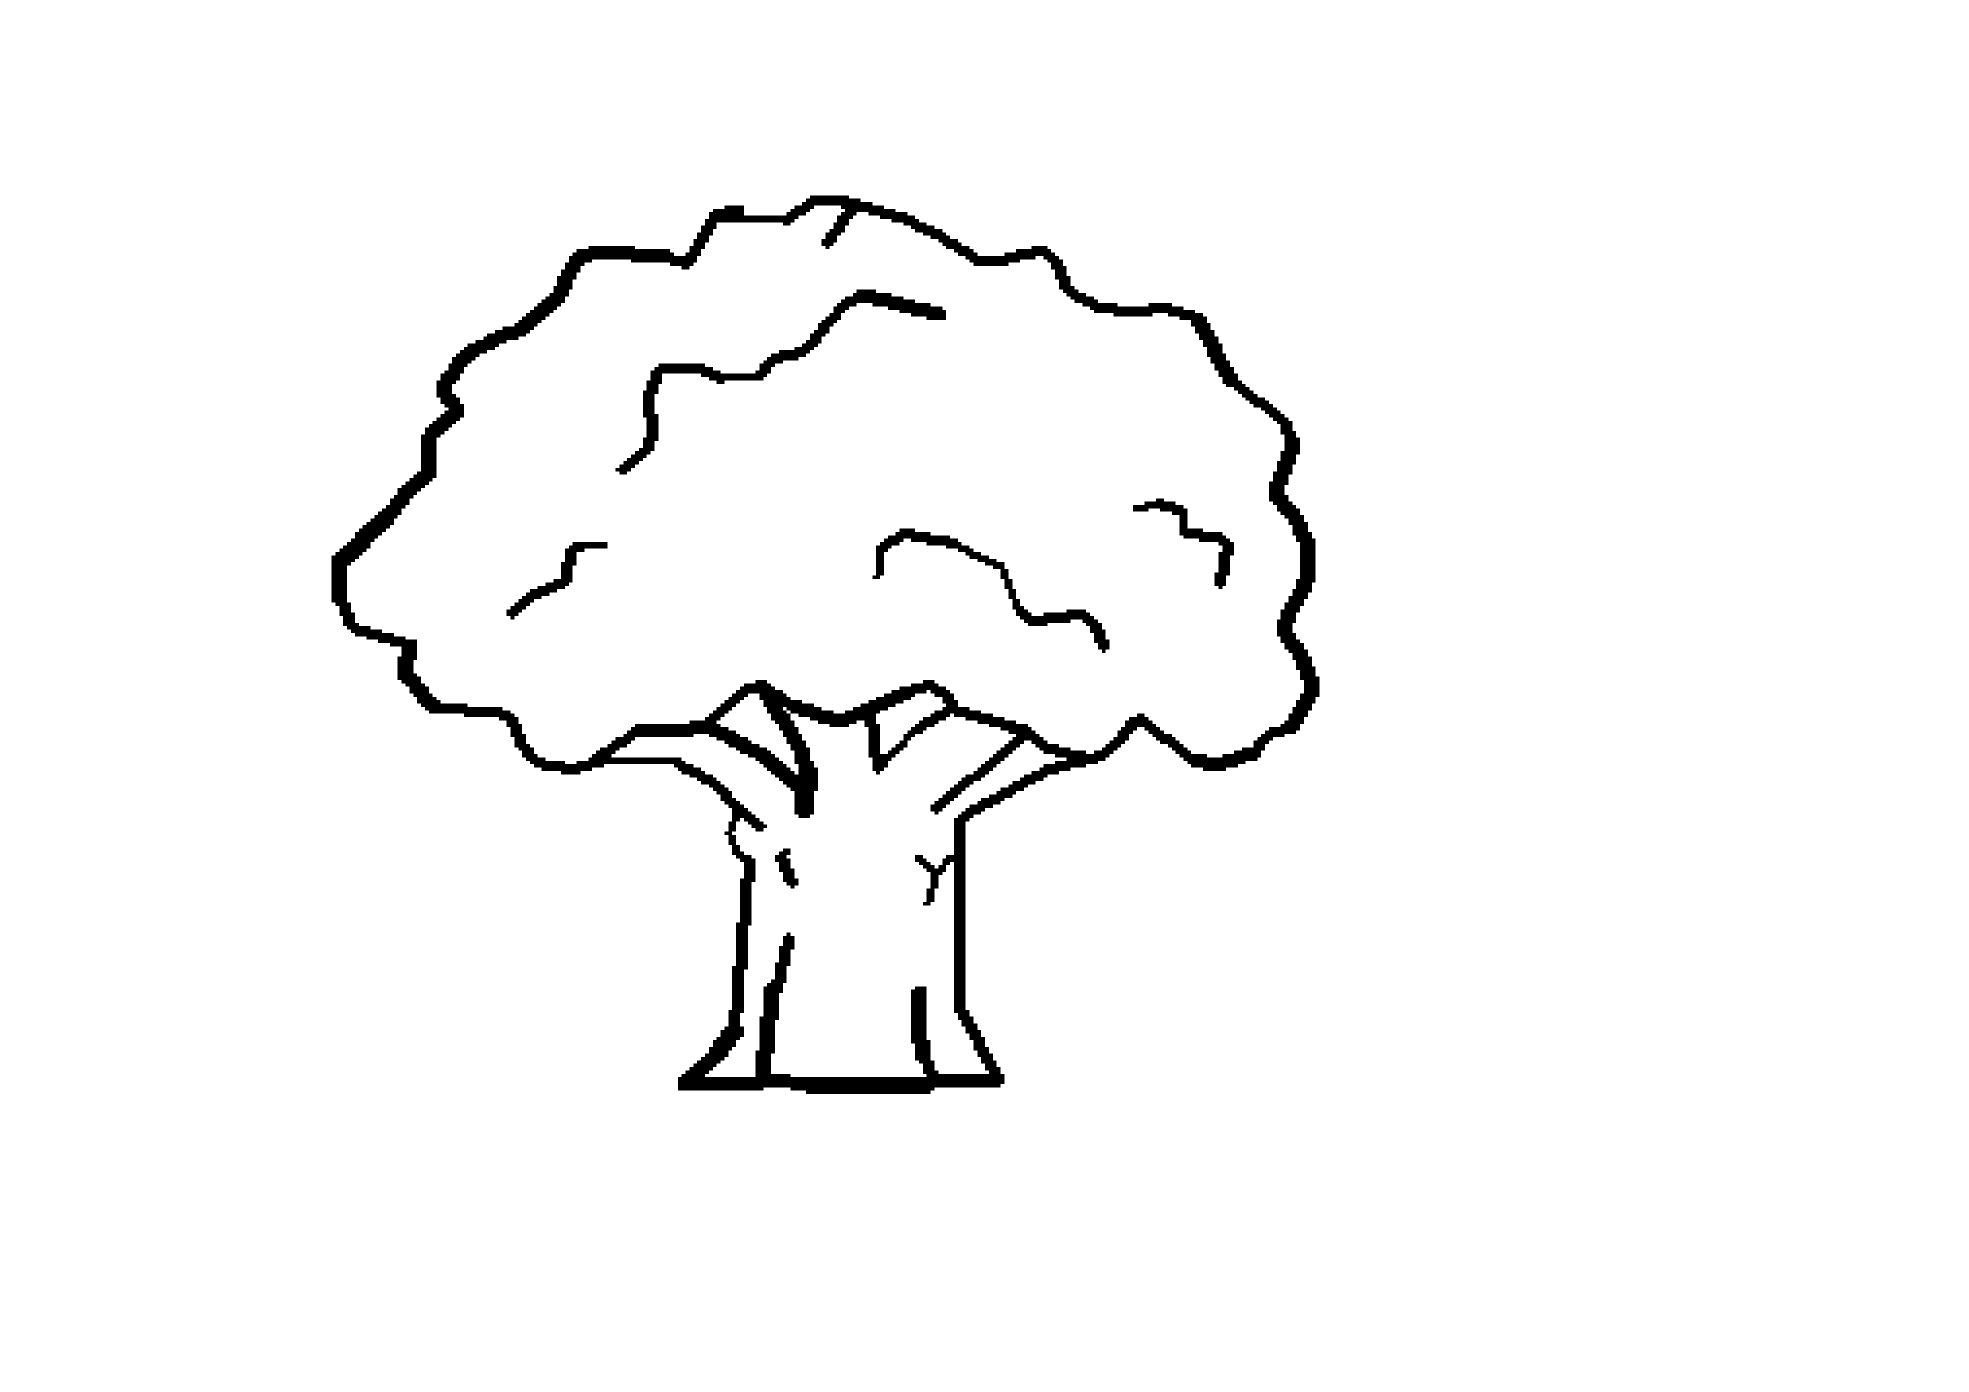 Free Tree Drawings Black And White, Download Free Clip Art.